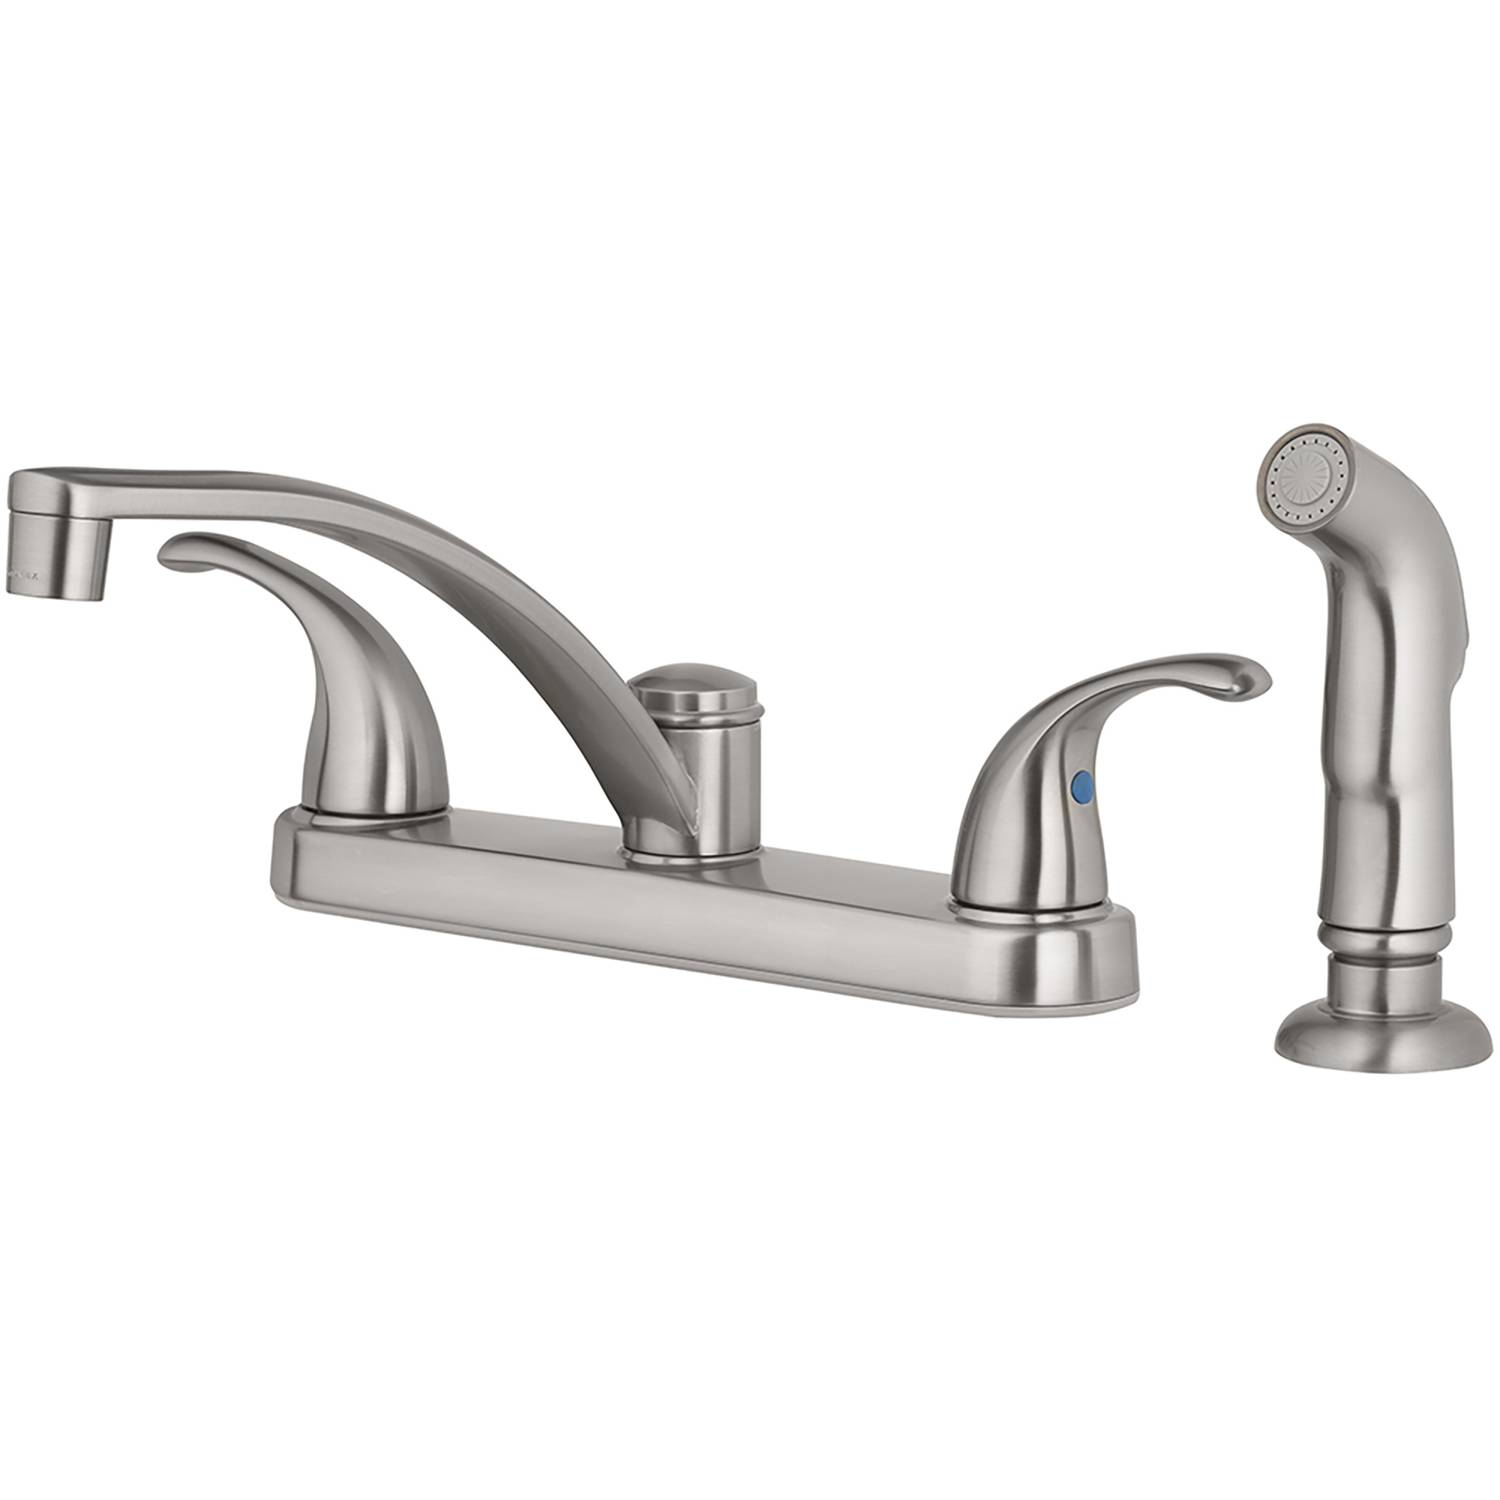 OakBrook Coastal Two Handle Brushed Nickel Kitchen Faucet Side Sprayer Included